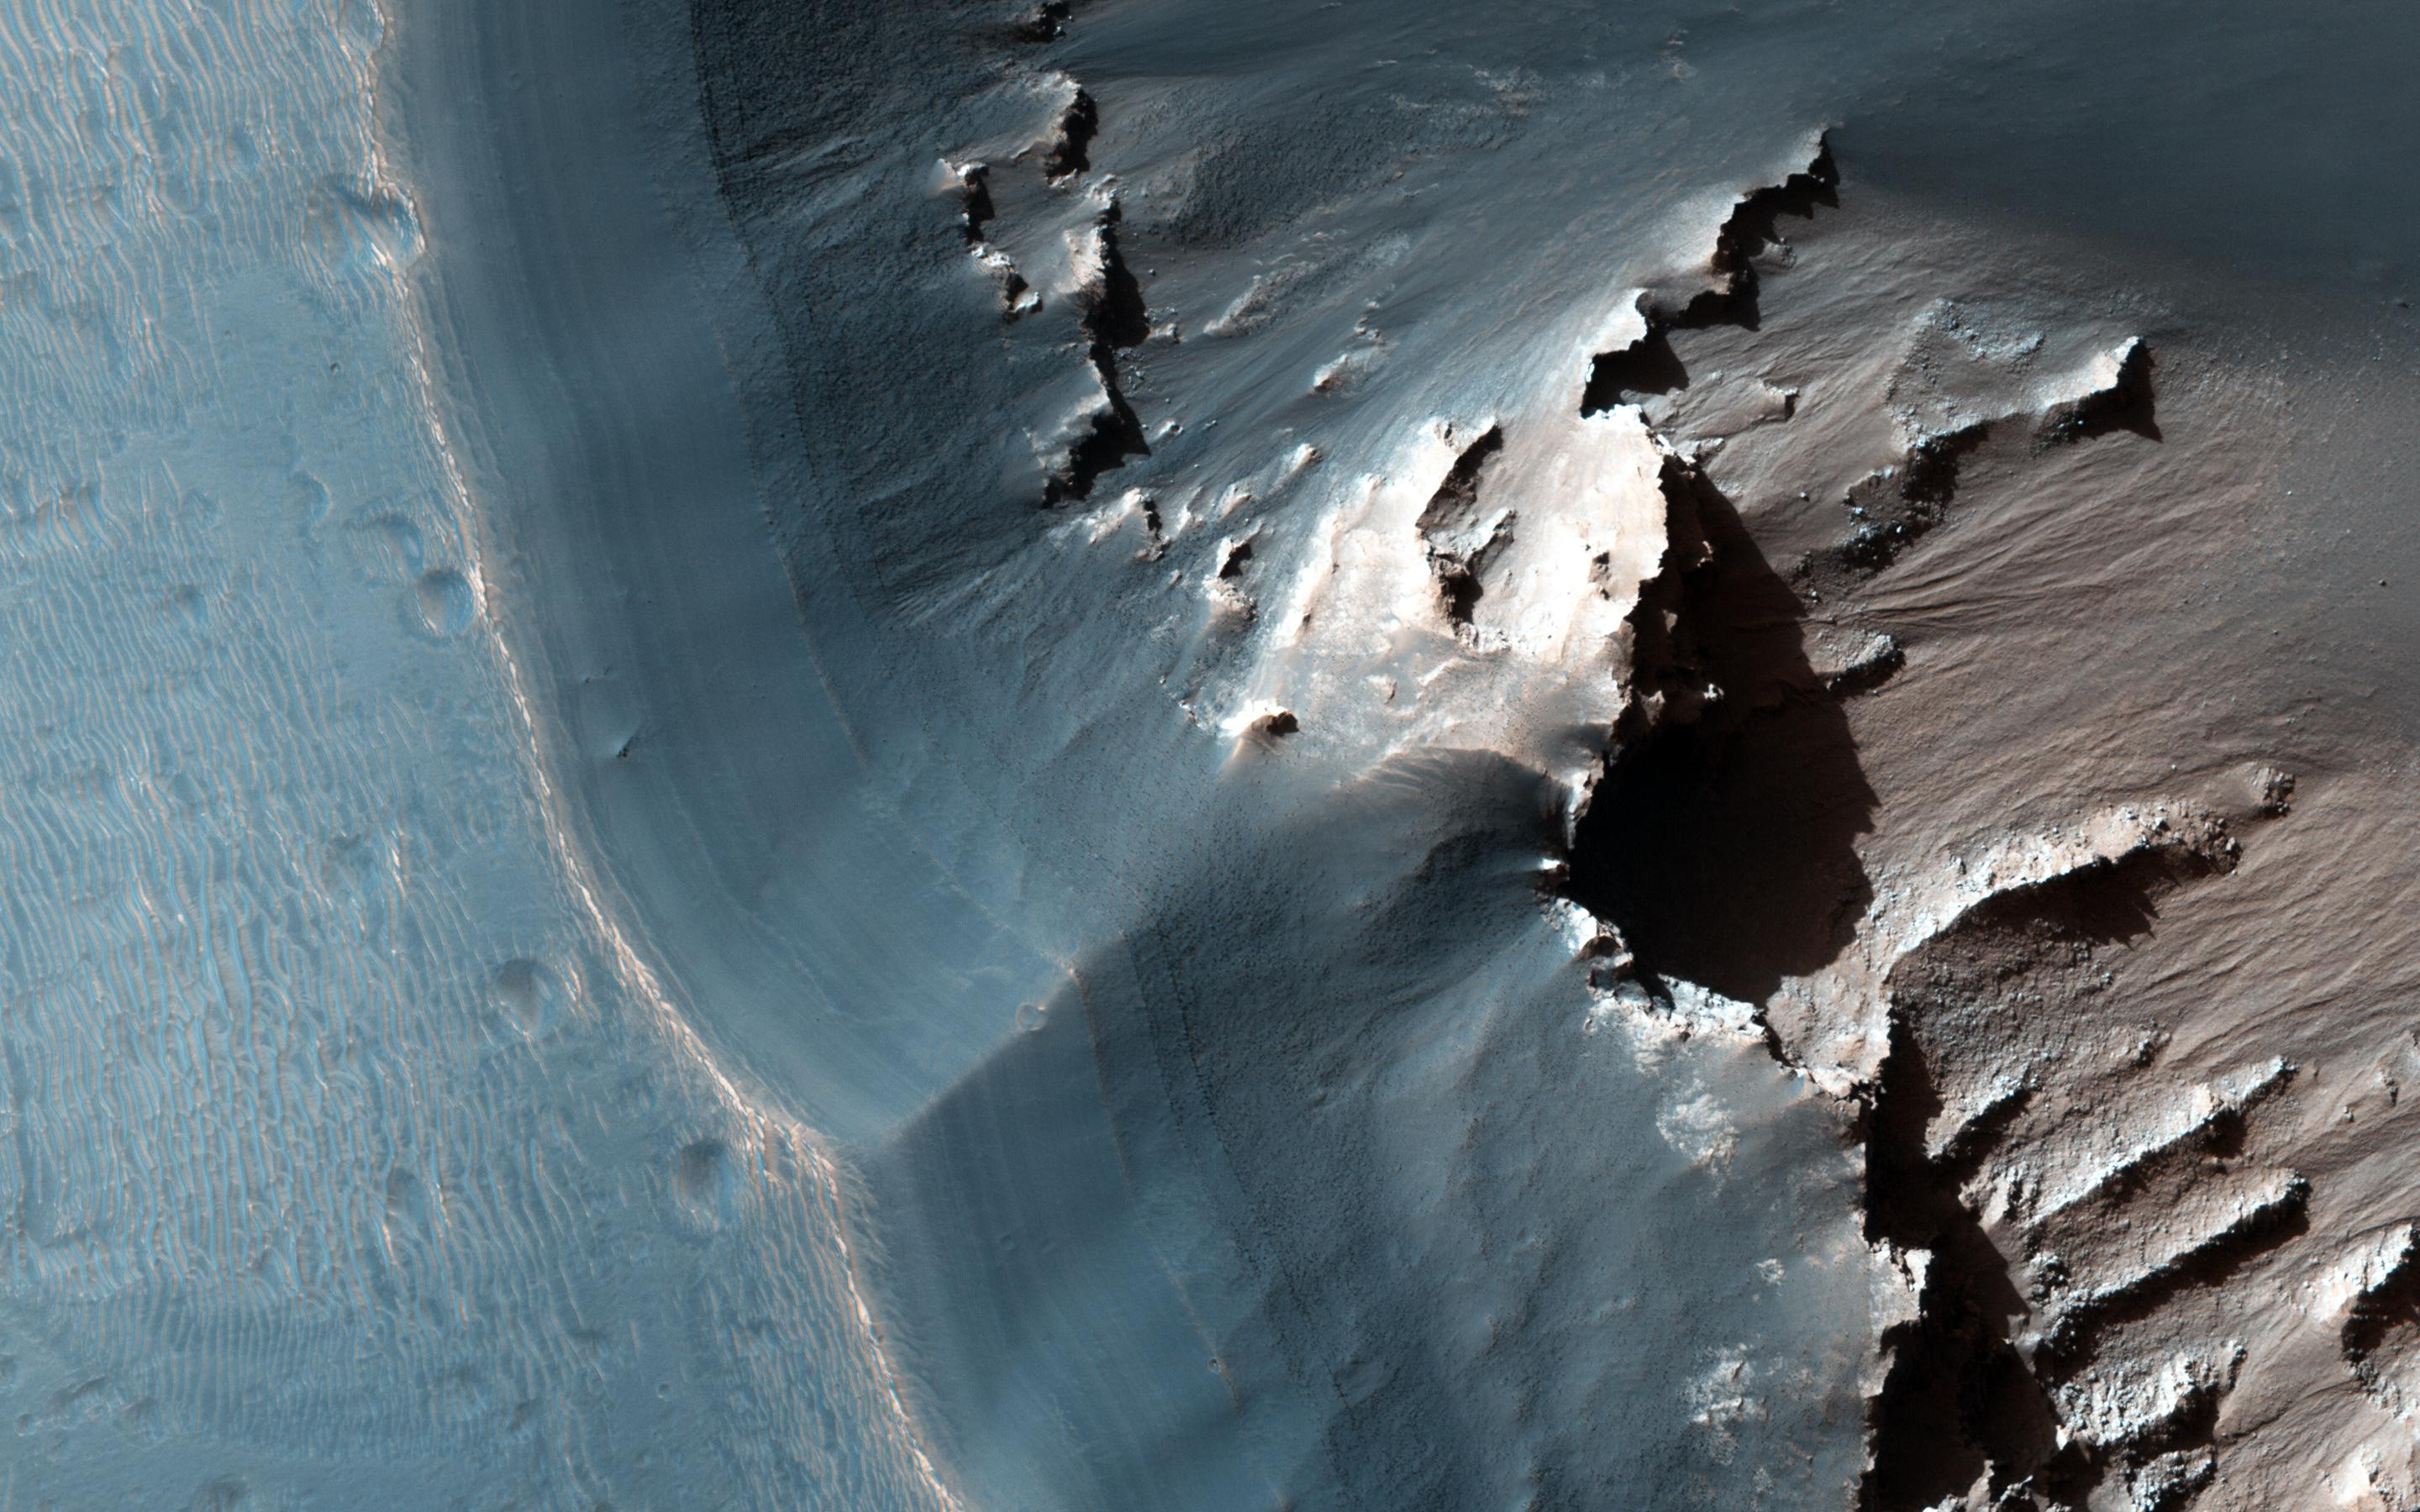 Jarosite in the Noctis Labyrinthus Region of Mars